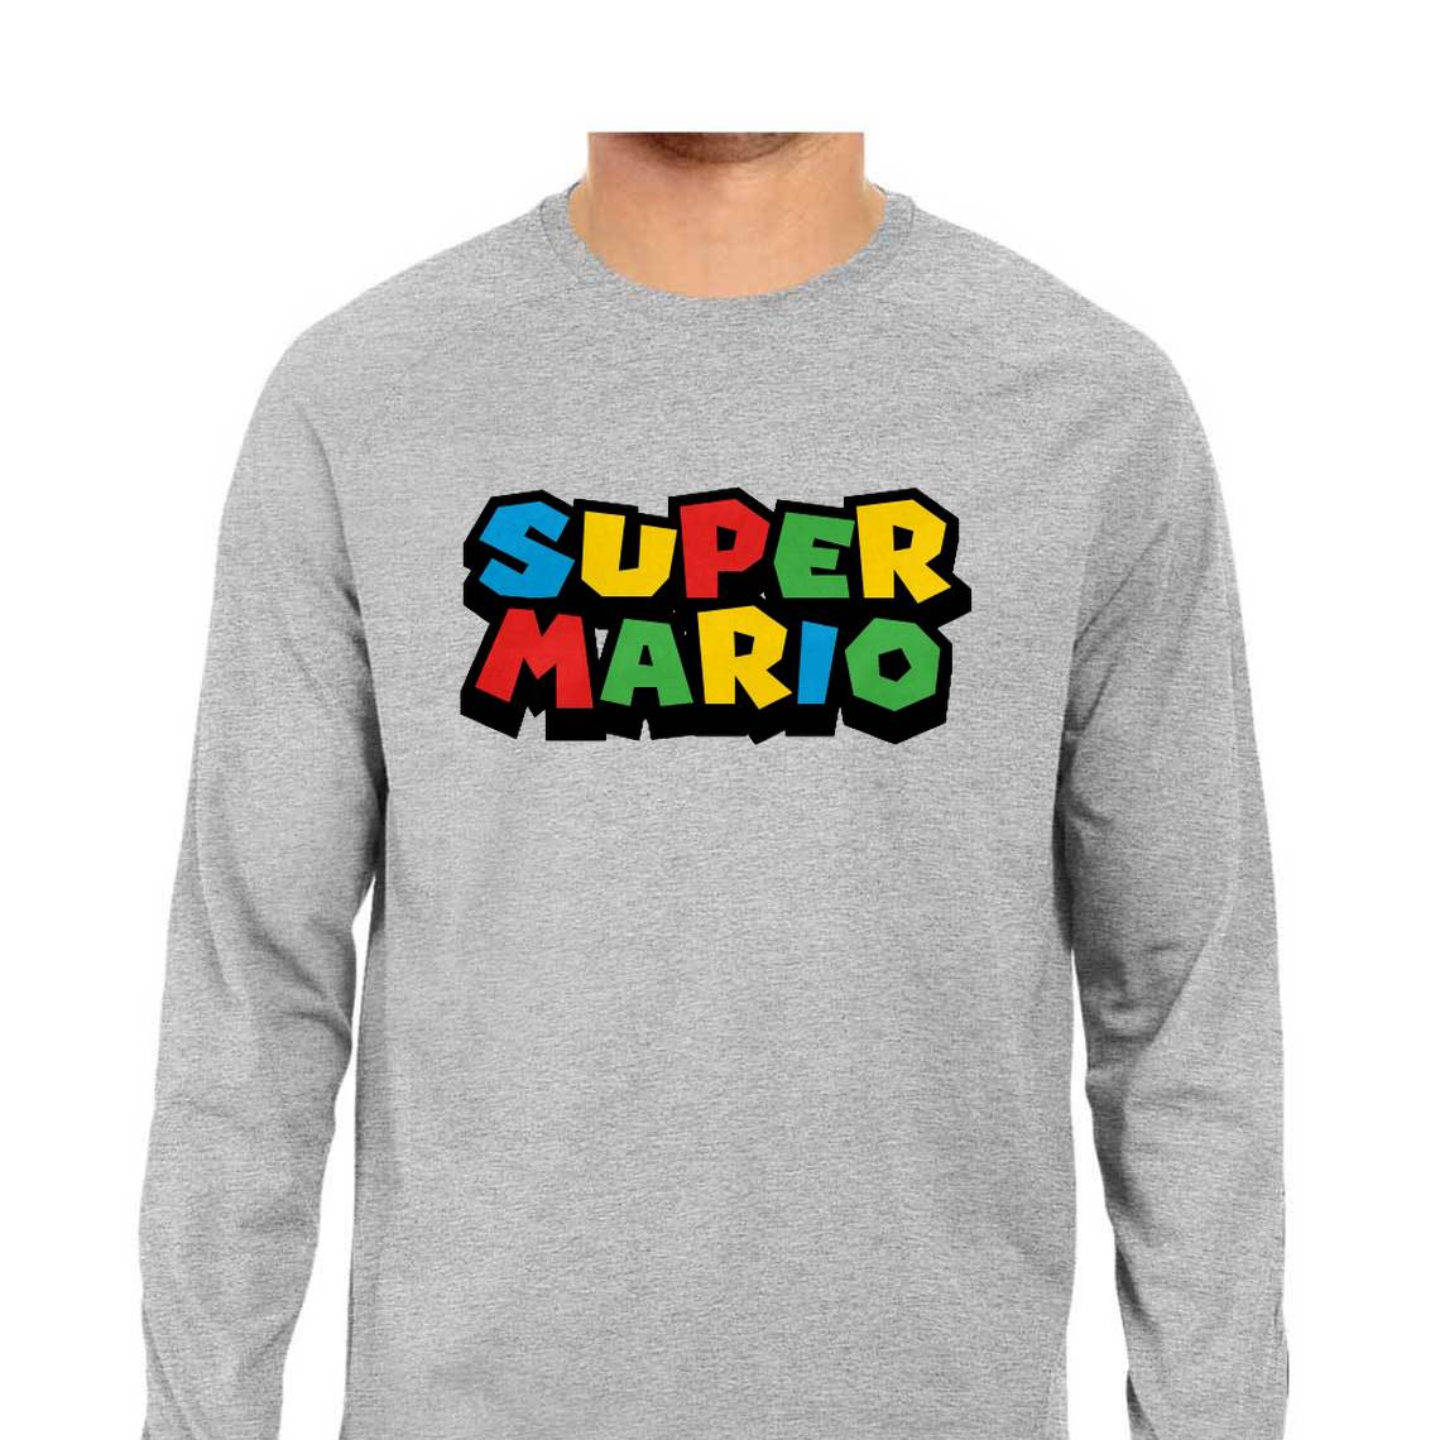 Super Mario Full Sleeves Tshirt